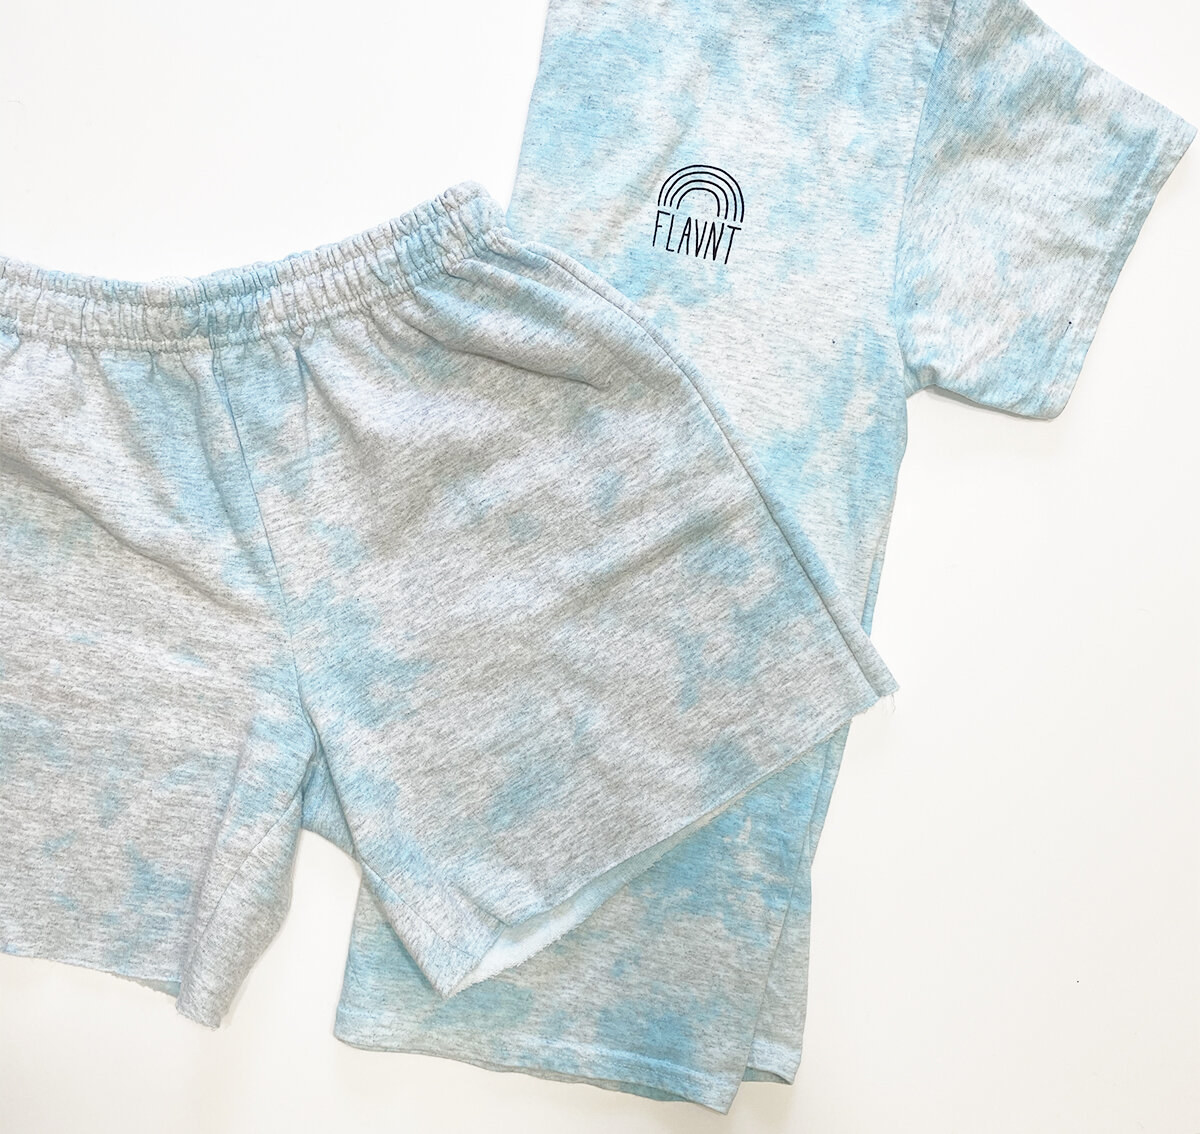 "Sweatpant shorts and a t-shirt both in grey with a blue tie-dye effect on them and the t-shirt has a small logo on the left side with a rainbow shape and the word ""Flavnt"" on it"